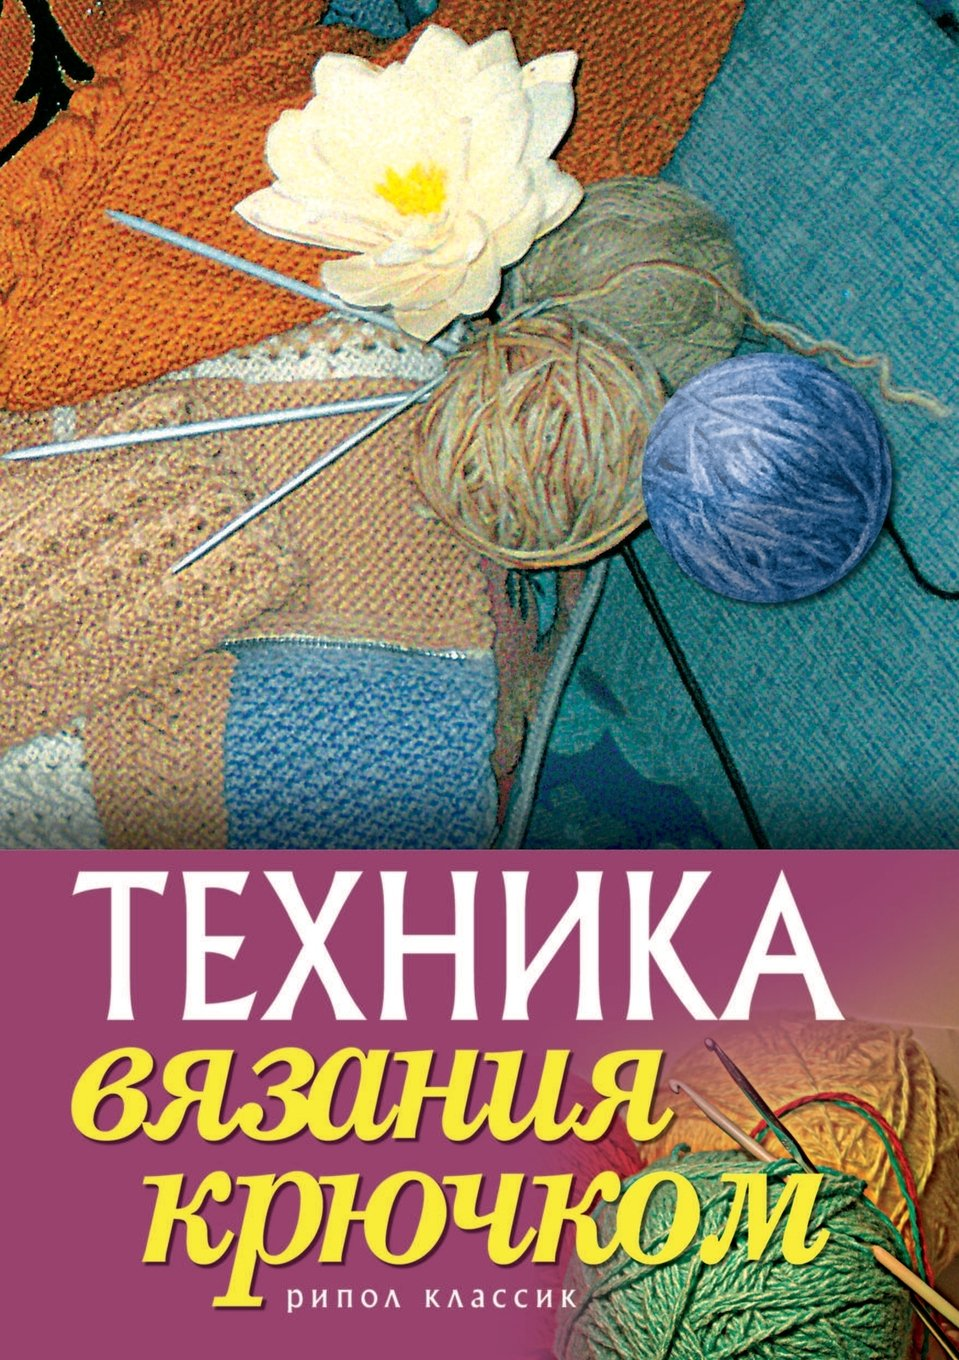 Download Technique crochet (Russian Edition) pdf